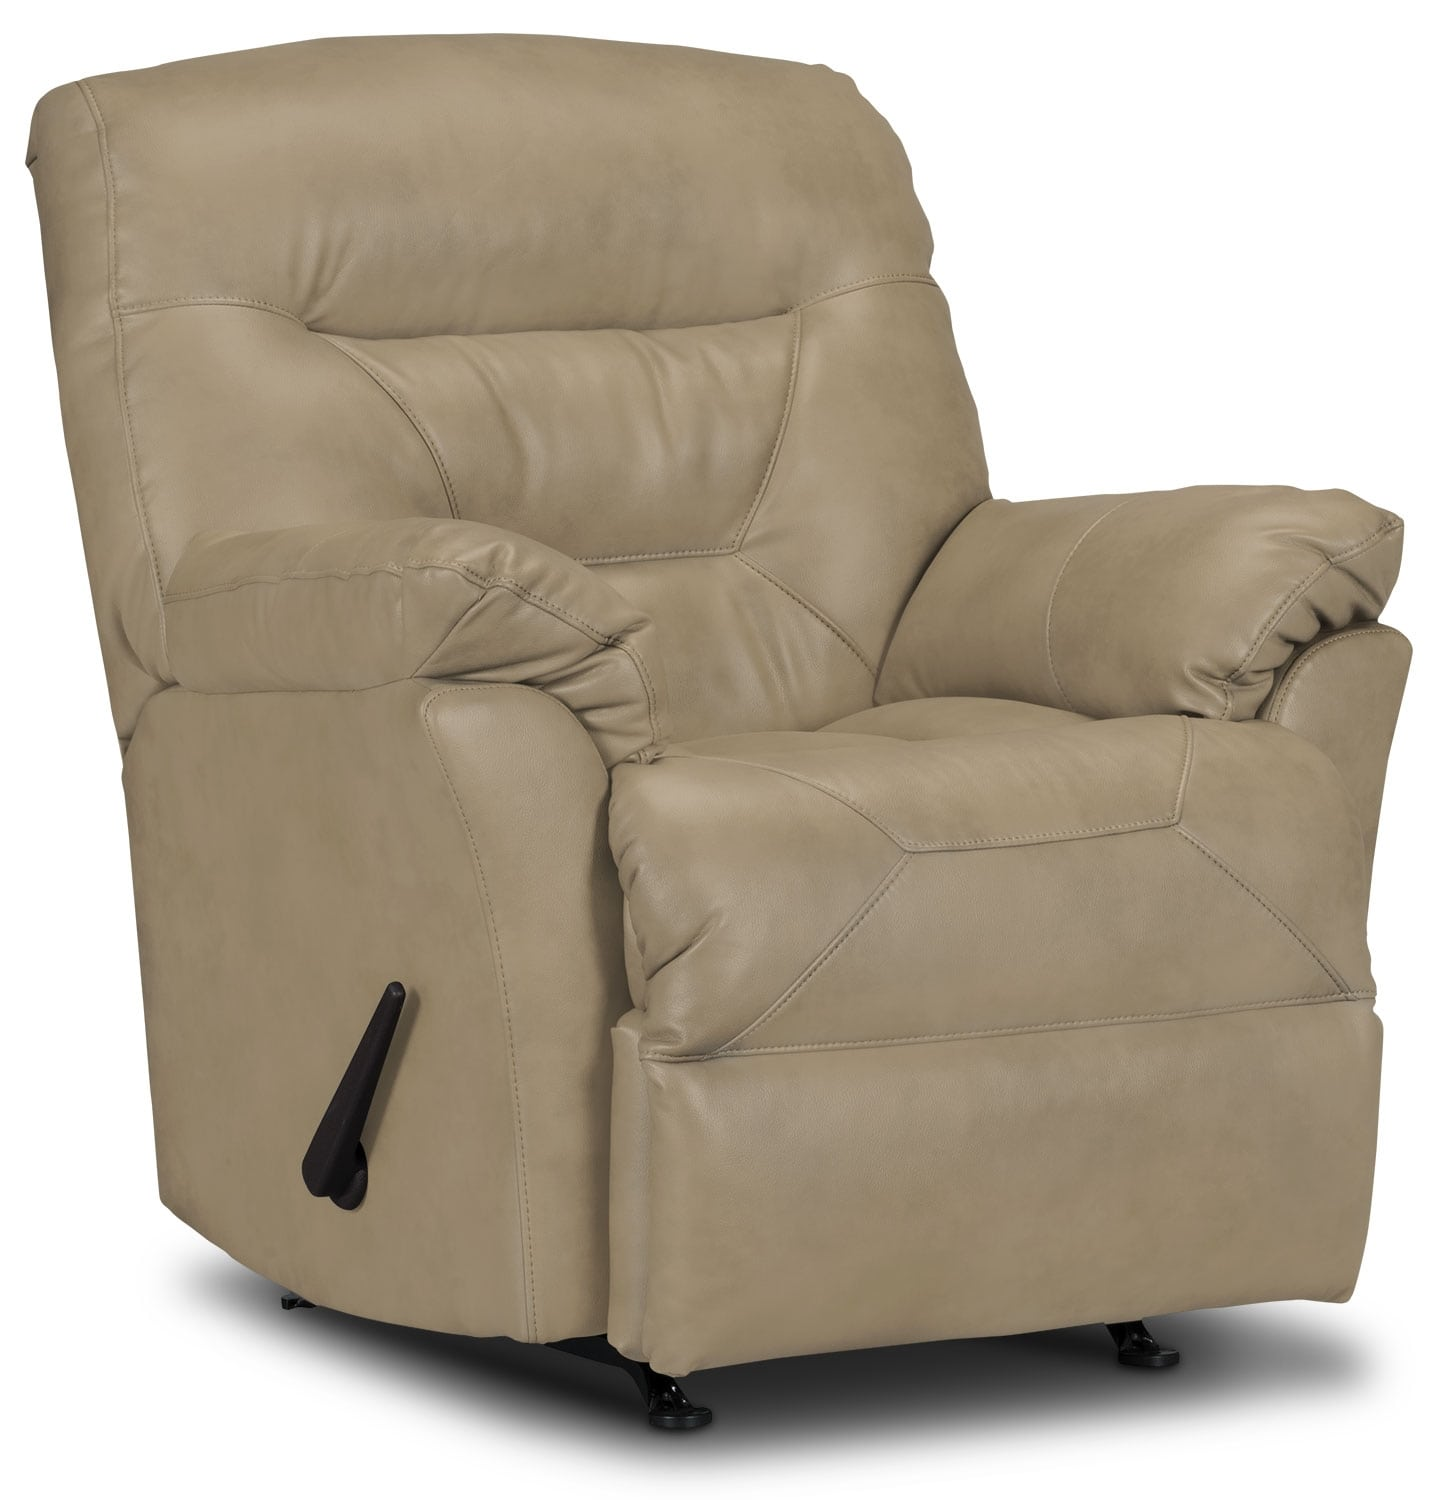 Designed2B Recliner 4579 Genuine Leather Rocker Recliner - Putty